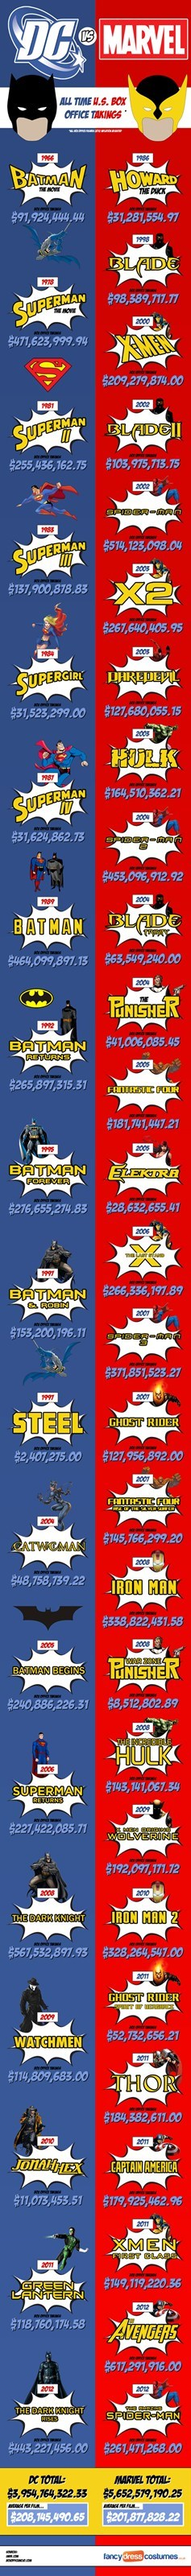 DC vs Marvel: Who Wins at the Box Office?